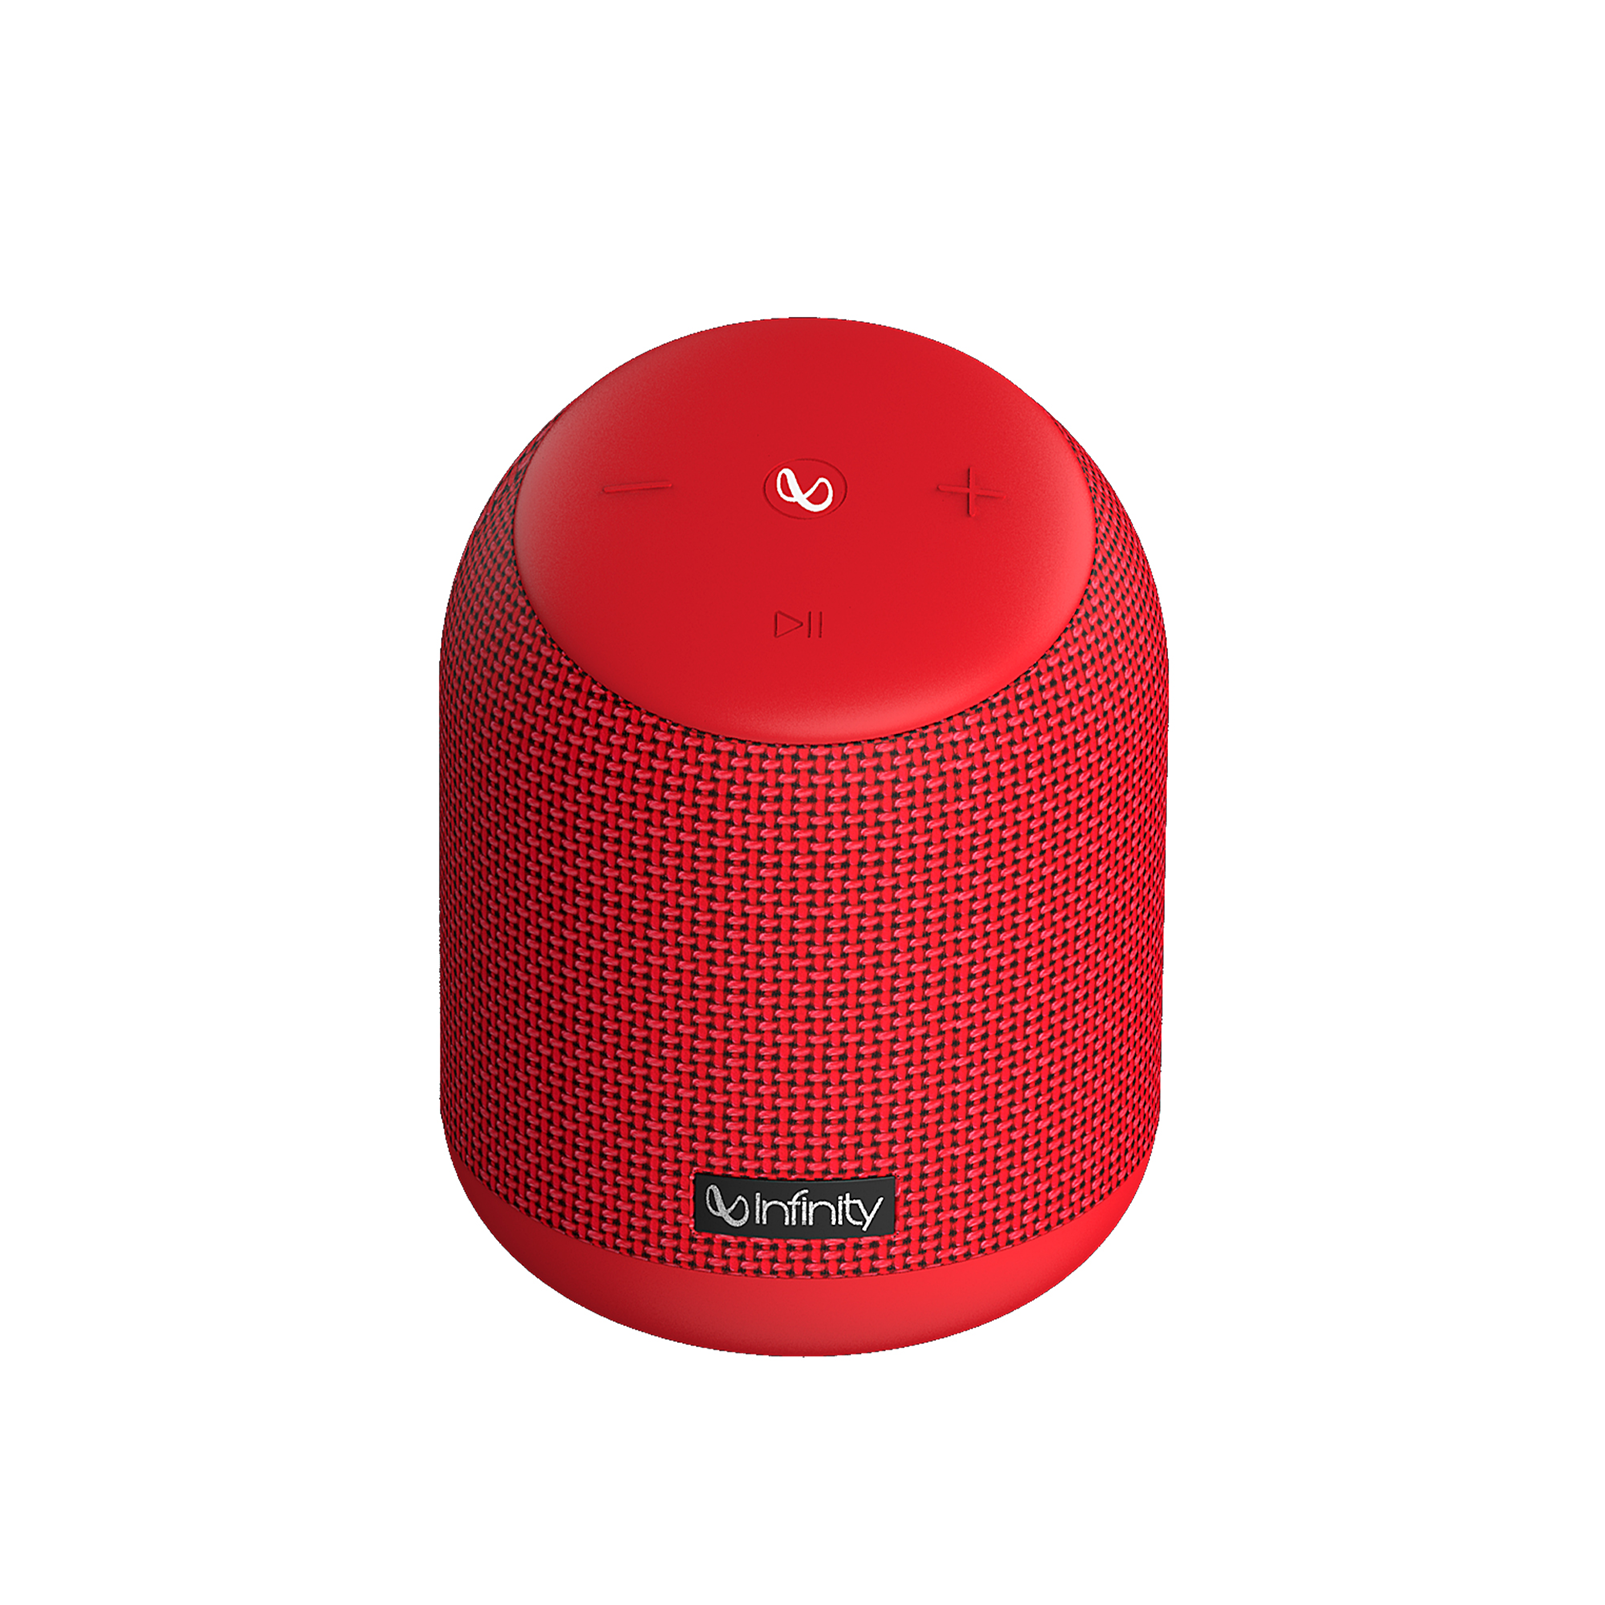 INFINITY FUZE 200 - Red - Portable Wireless Speakers - Front